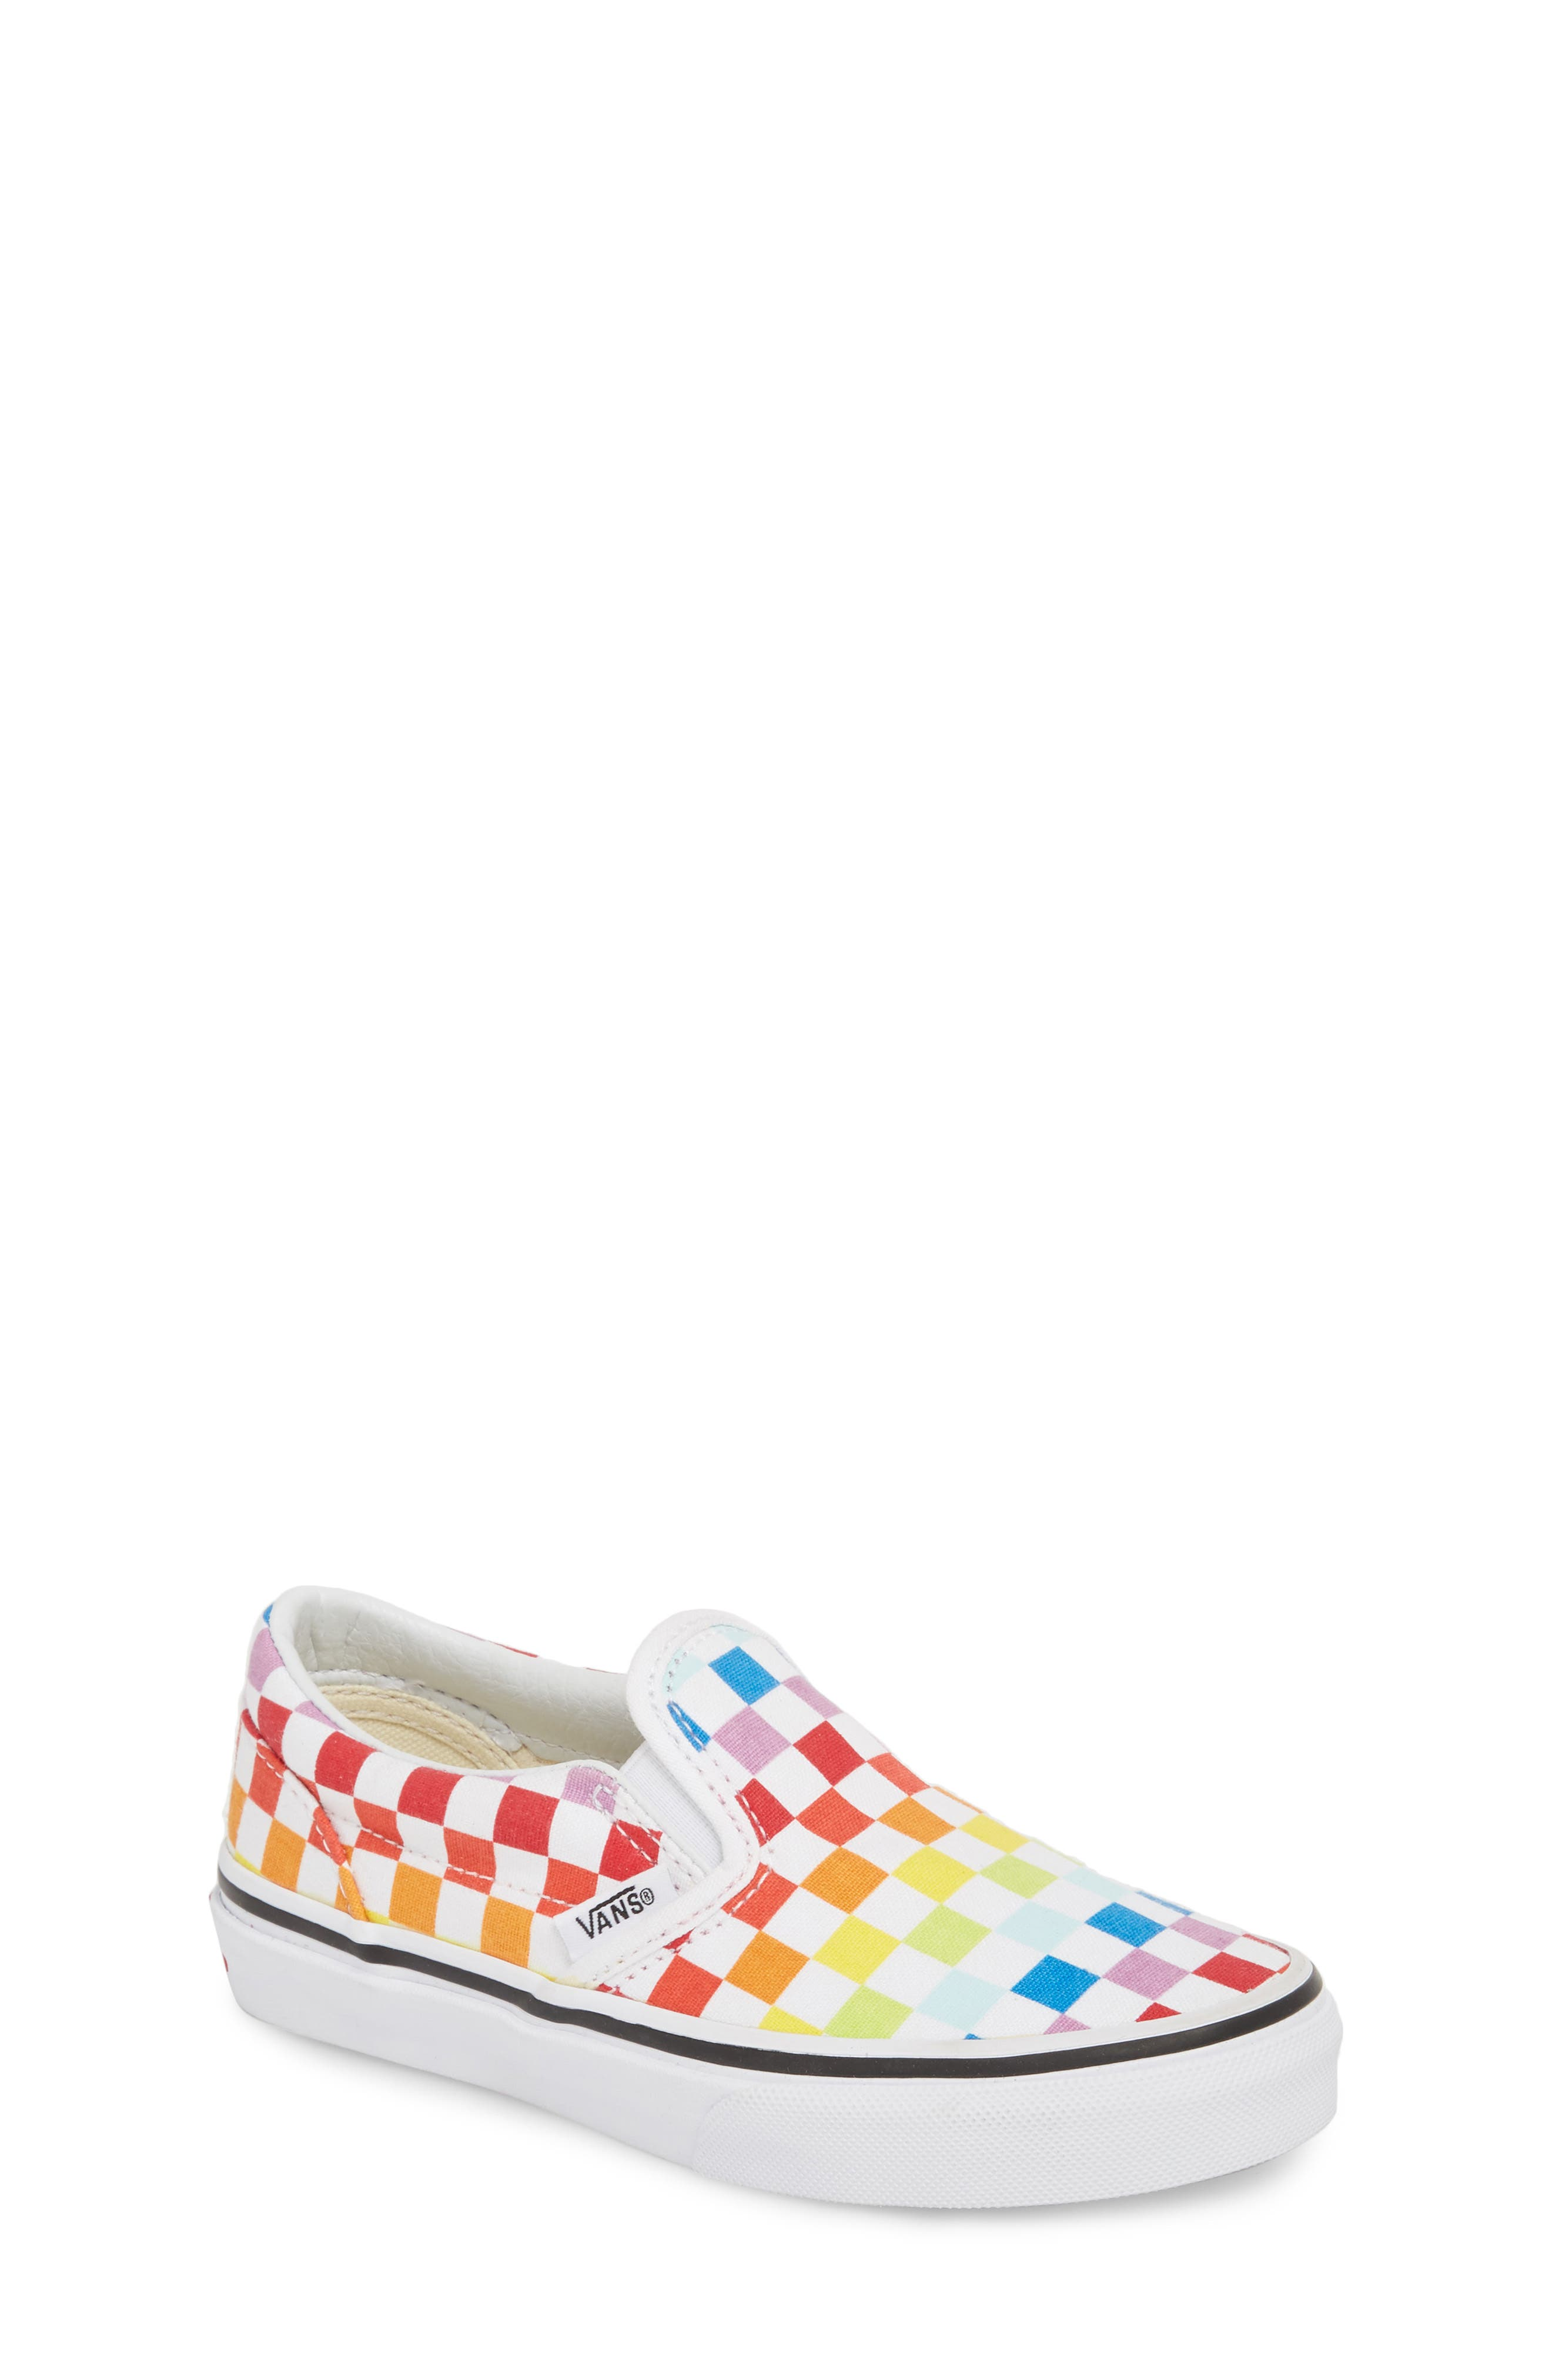 'Classic - Checker' Slip-On,                             Main thumbnail 1, color,                             Rainbow/ True White